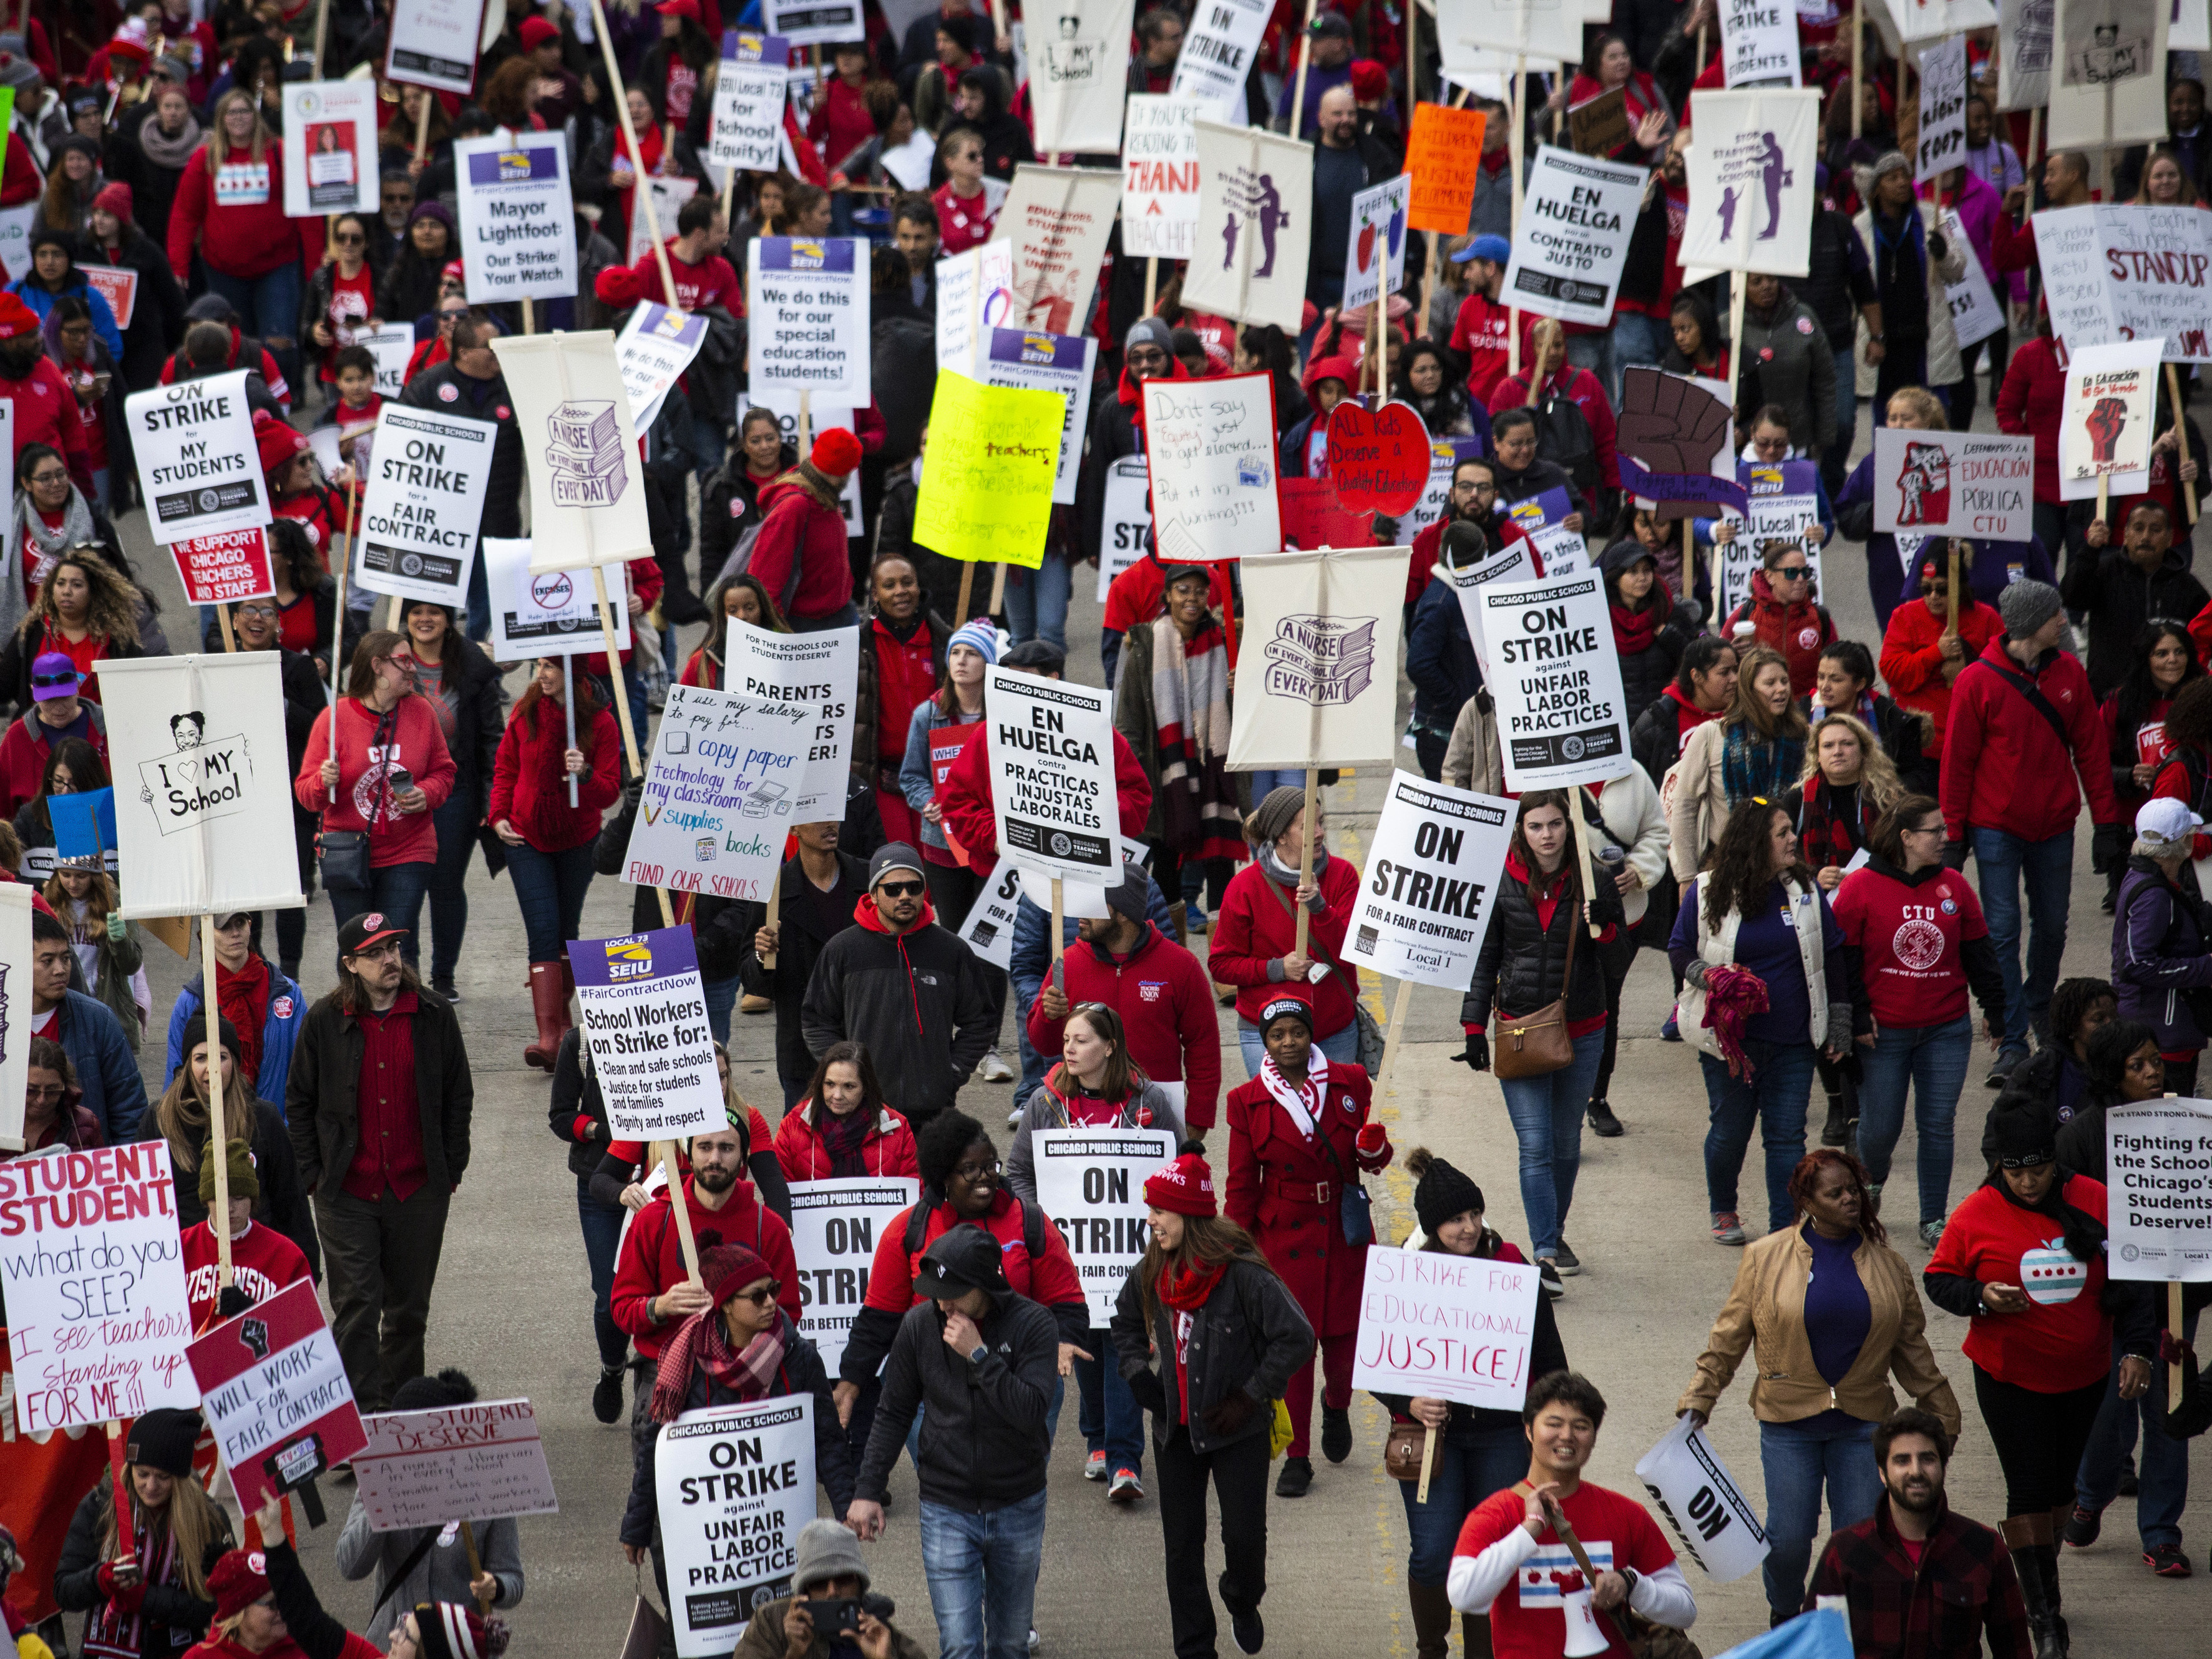 Thousands of striking Chicago Teachers Union members and their supporters march through the Loop on the first day of the strike on Oct. 17, 2019.